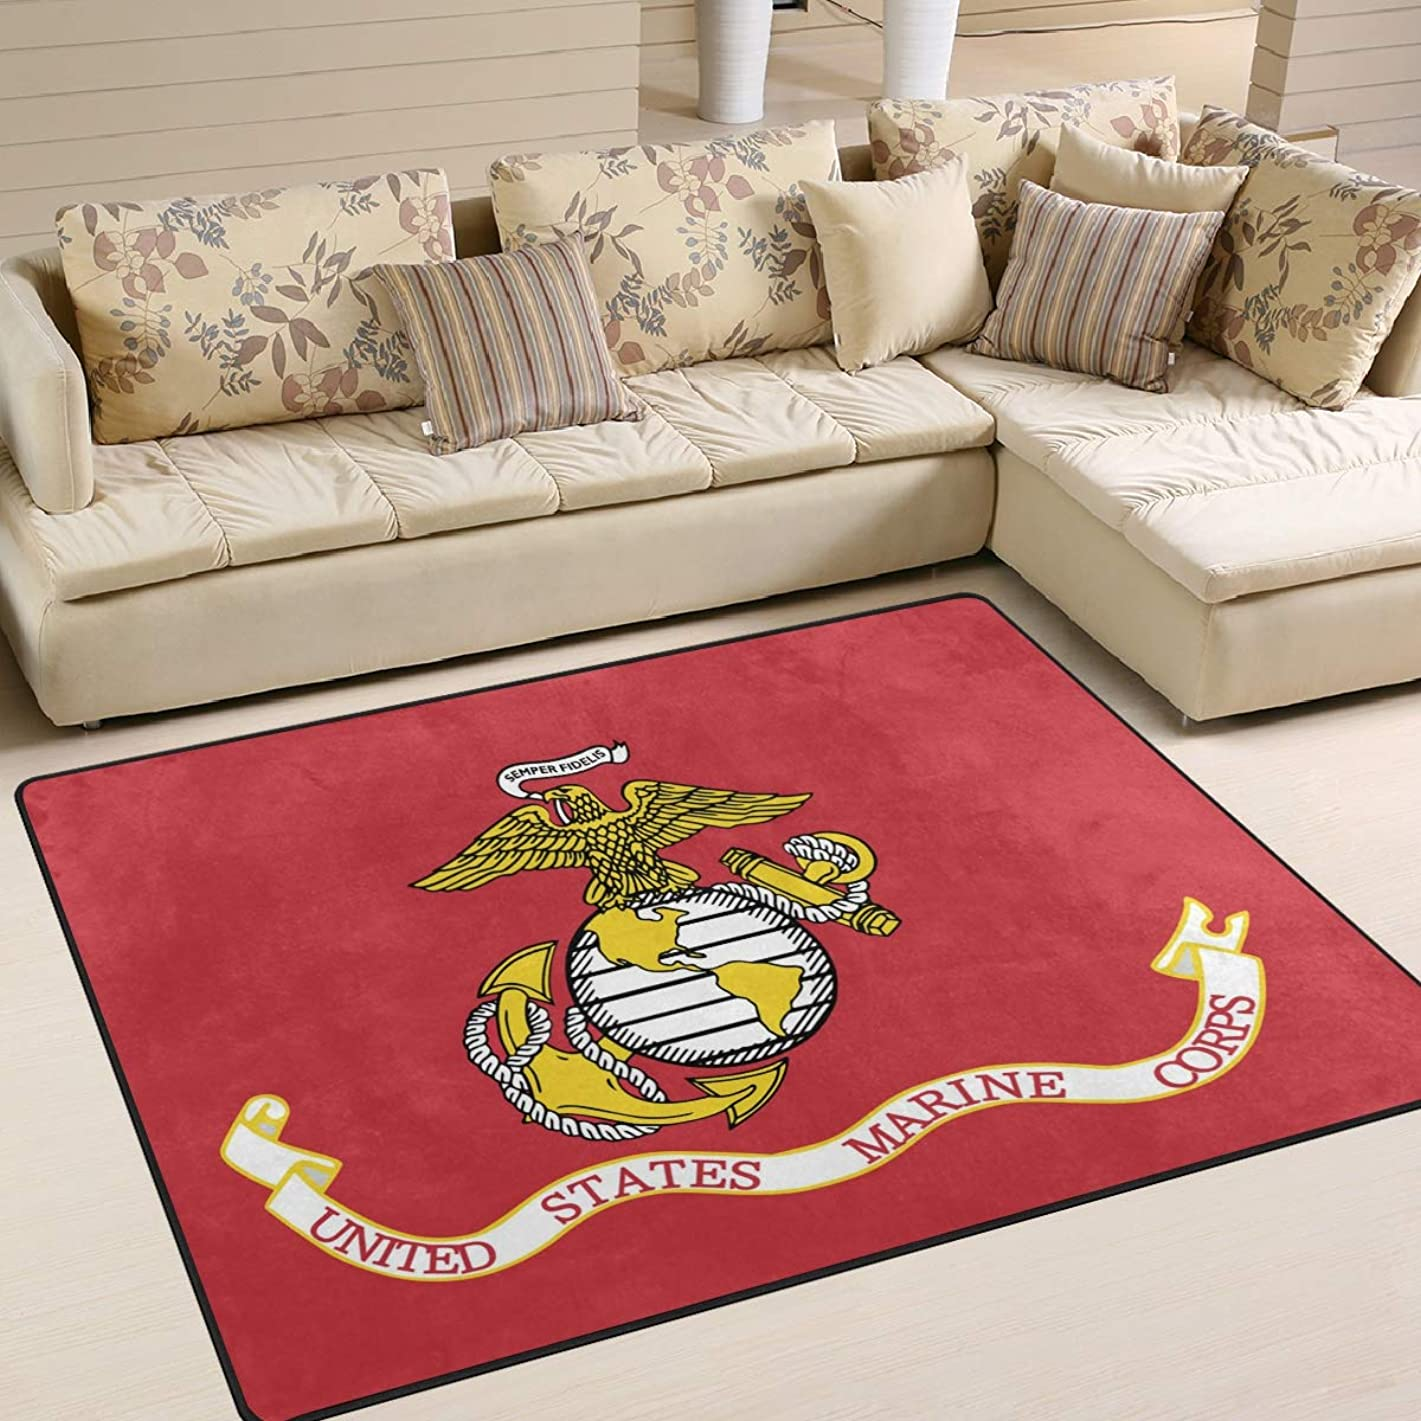 Flag of The United States Marine Corps Area Rug 4'x6', Educational Polyester Area Rug Mat for Living Dining Dorm Room Bedroom Home Decorative